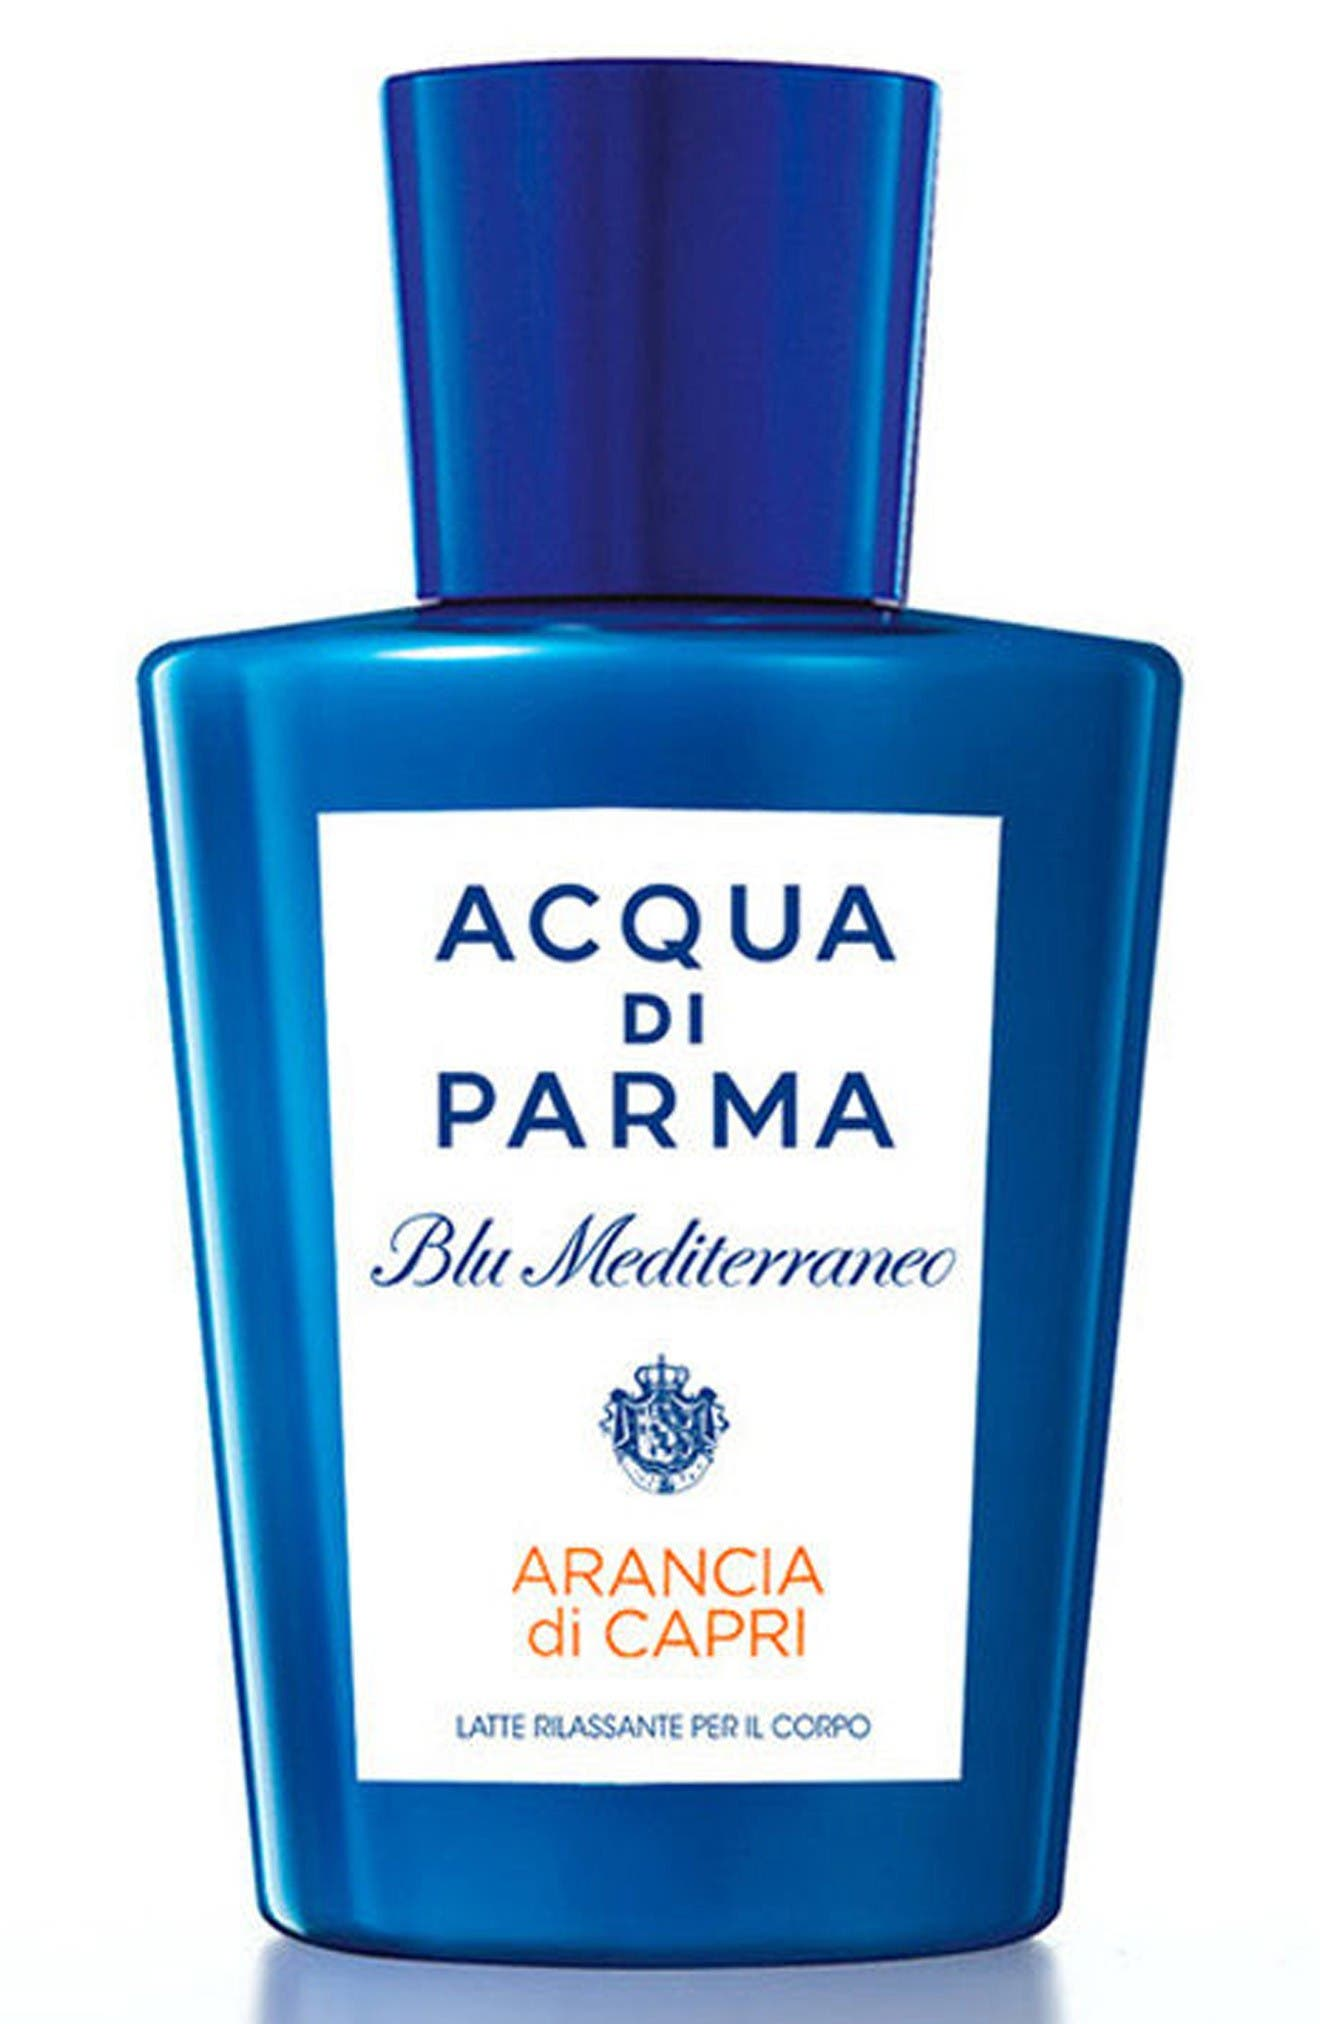 Alternate Image 1 Selected - Acqua di Parma 'Blu Mediterraneo' Arancia di Capri Body Lotion